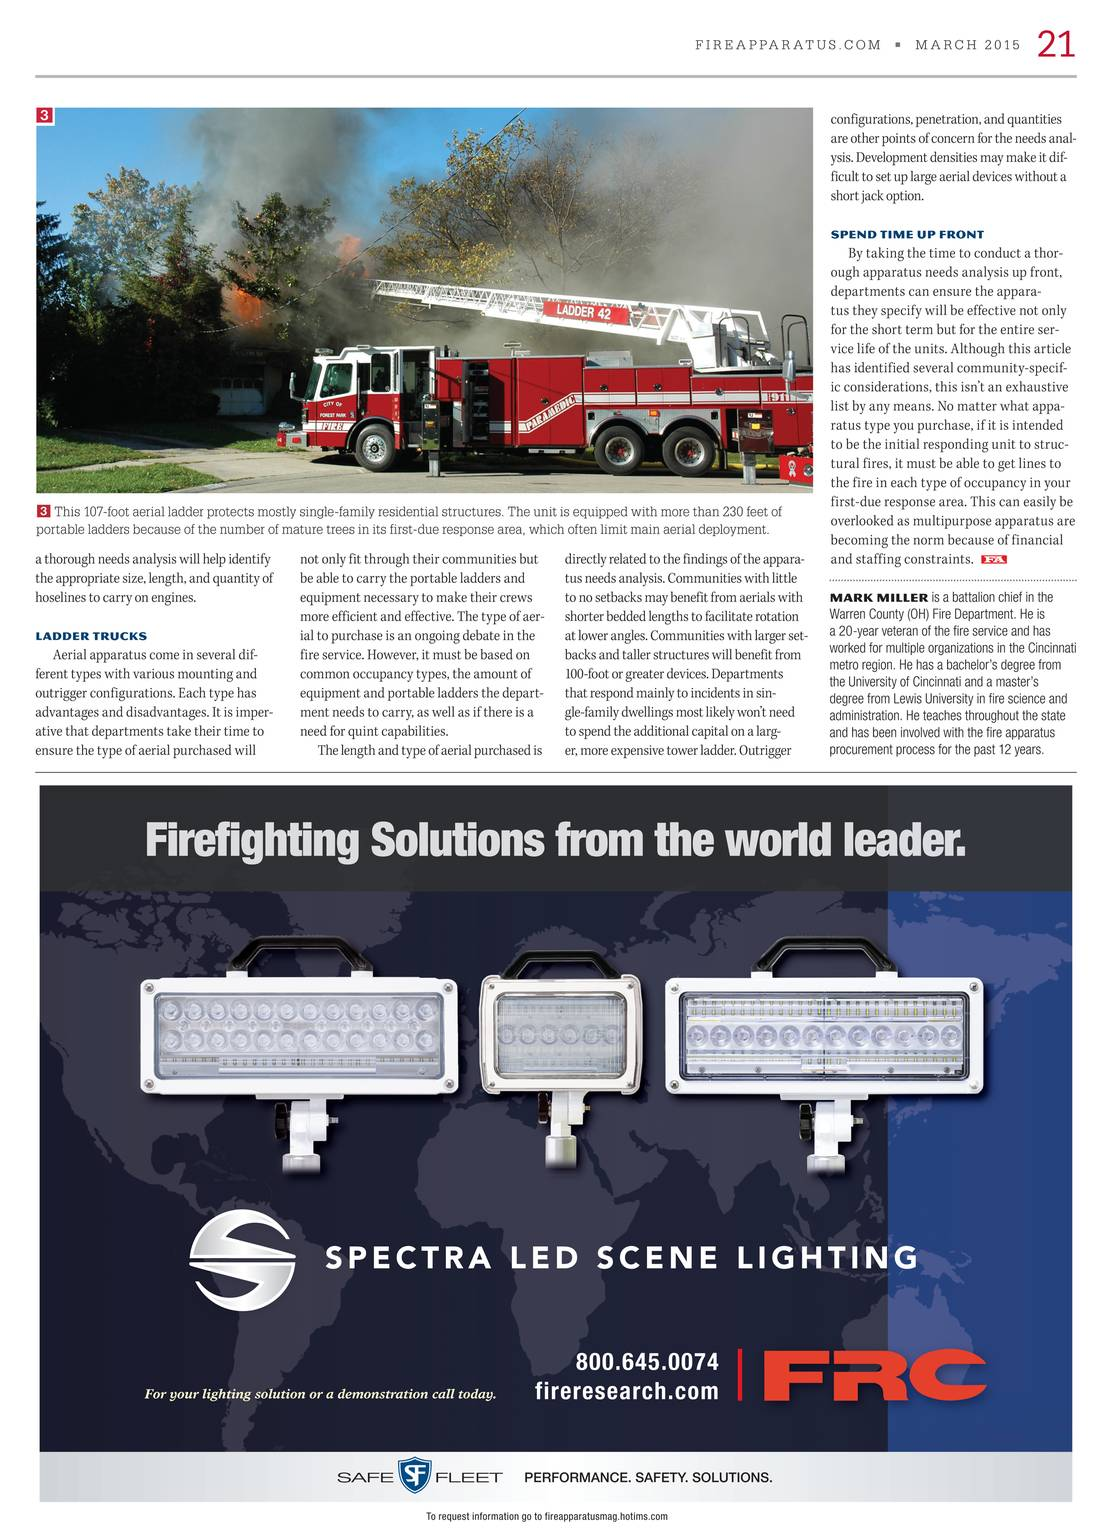 Needs Ysis | Fire Apparatus Magazine March 2015 Page 22